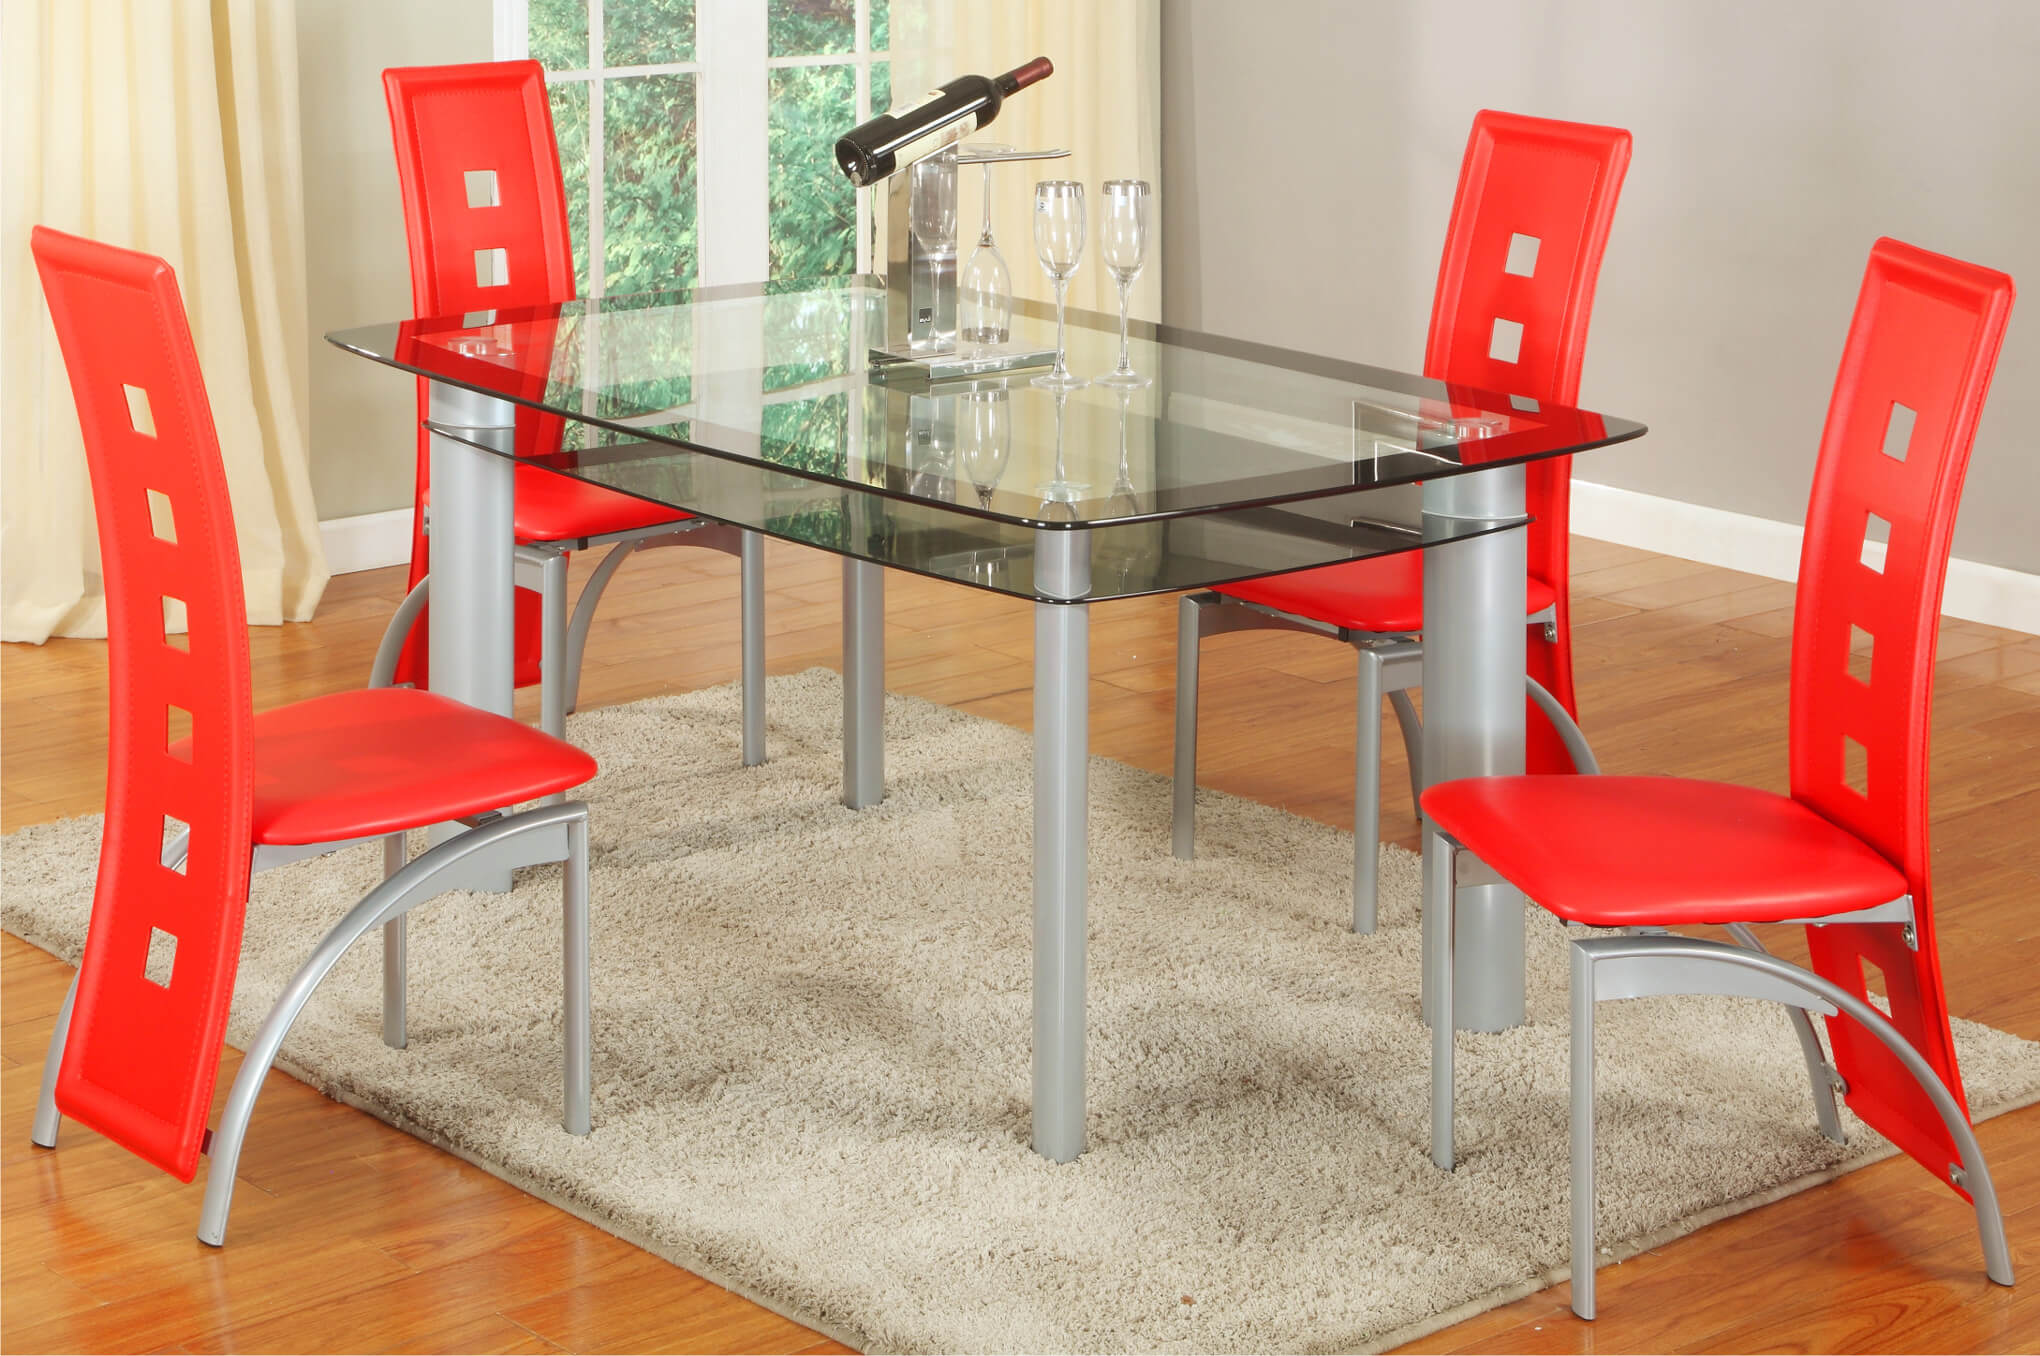 2222 metro red 5 piece dining set - Red Dining Room Set